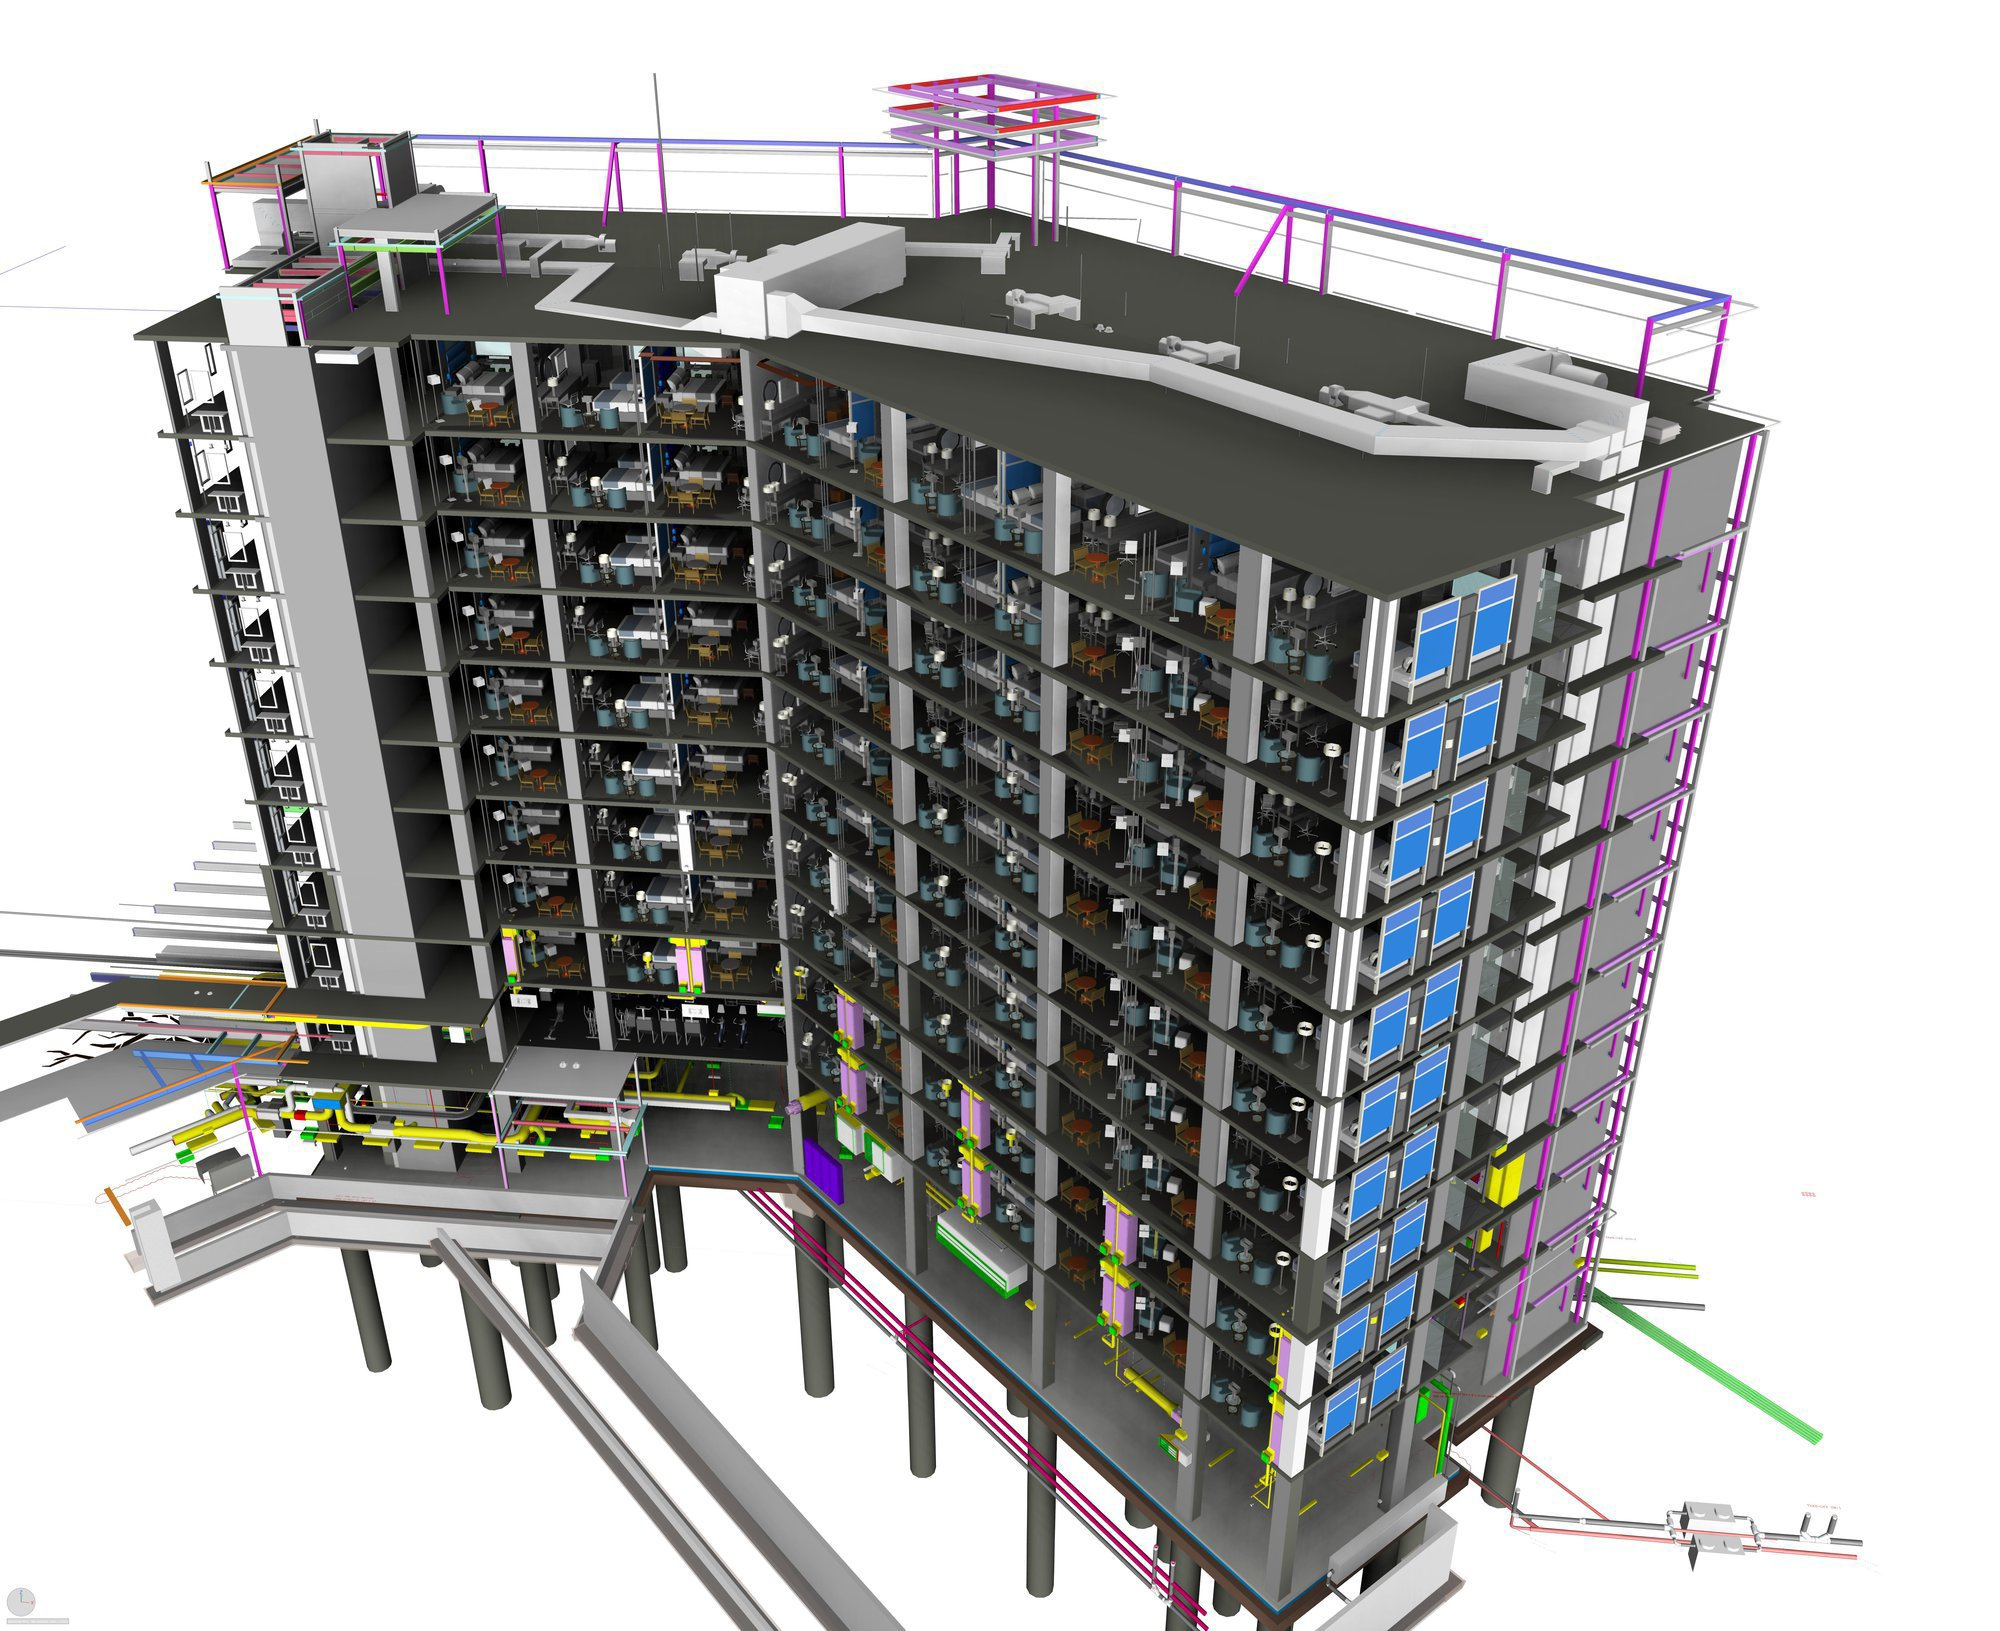 How We Optimize Building Information Modeling (BIM) for Preconstruction Activities| Concrete Construction Magazine